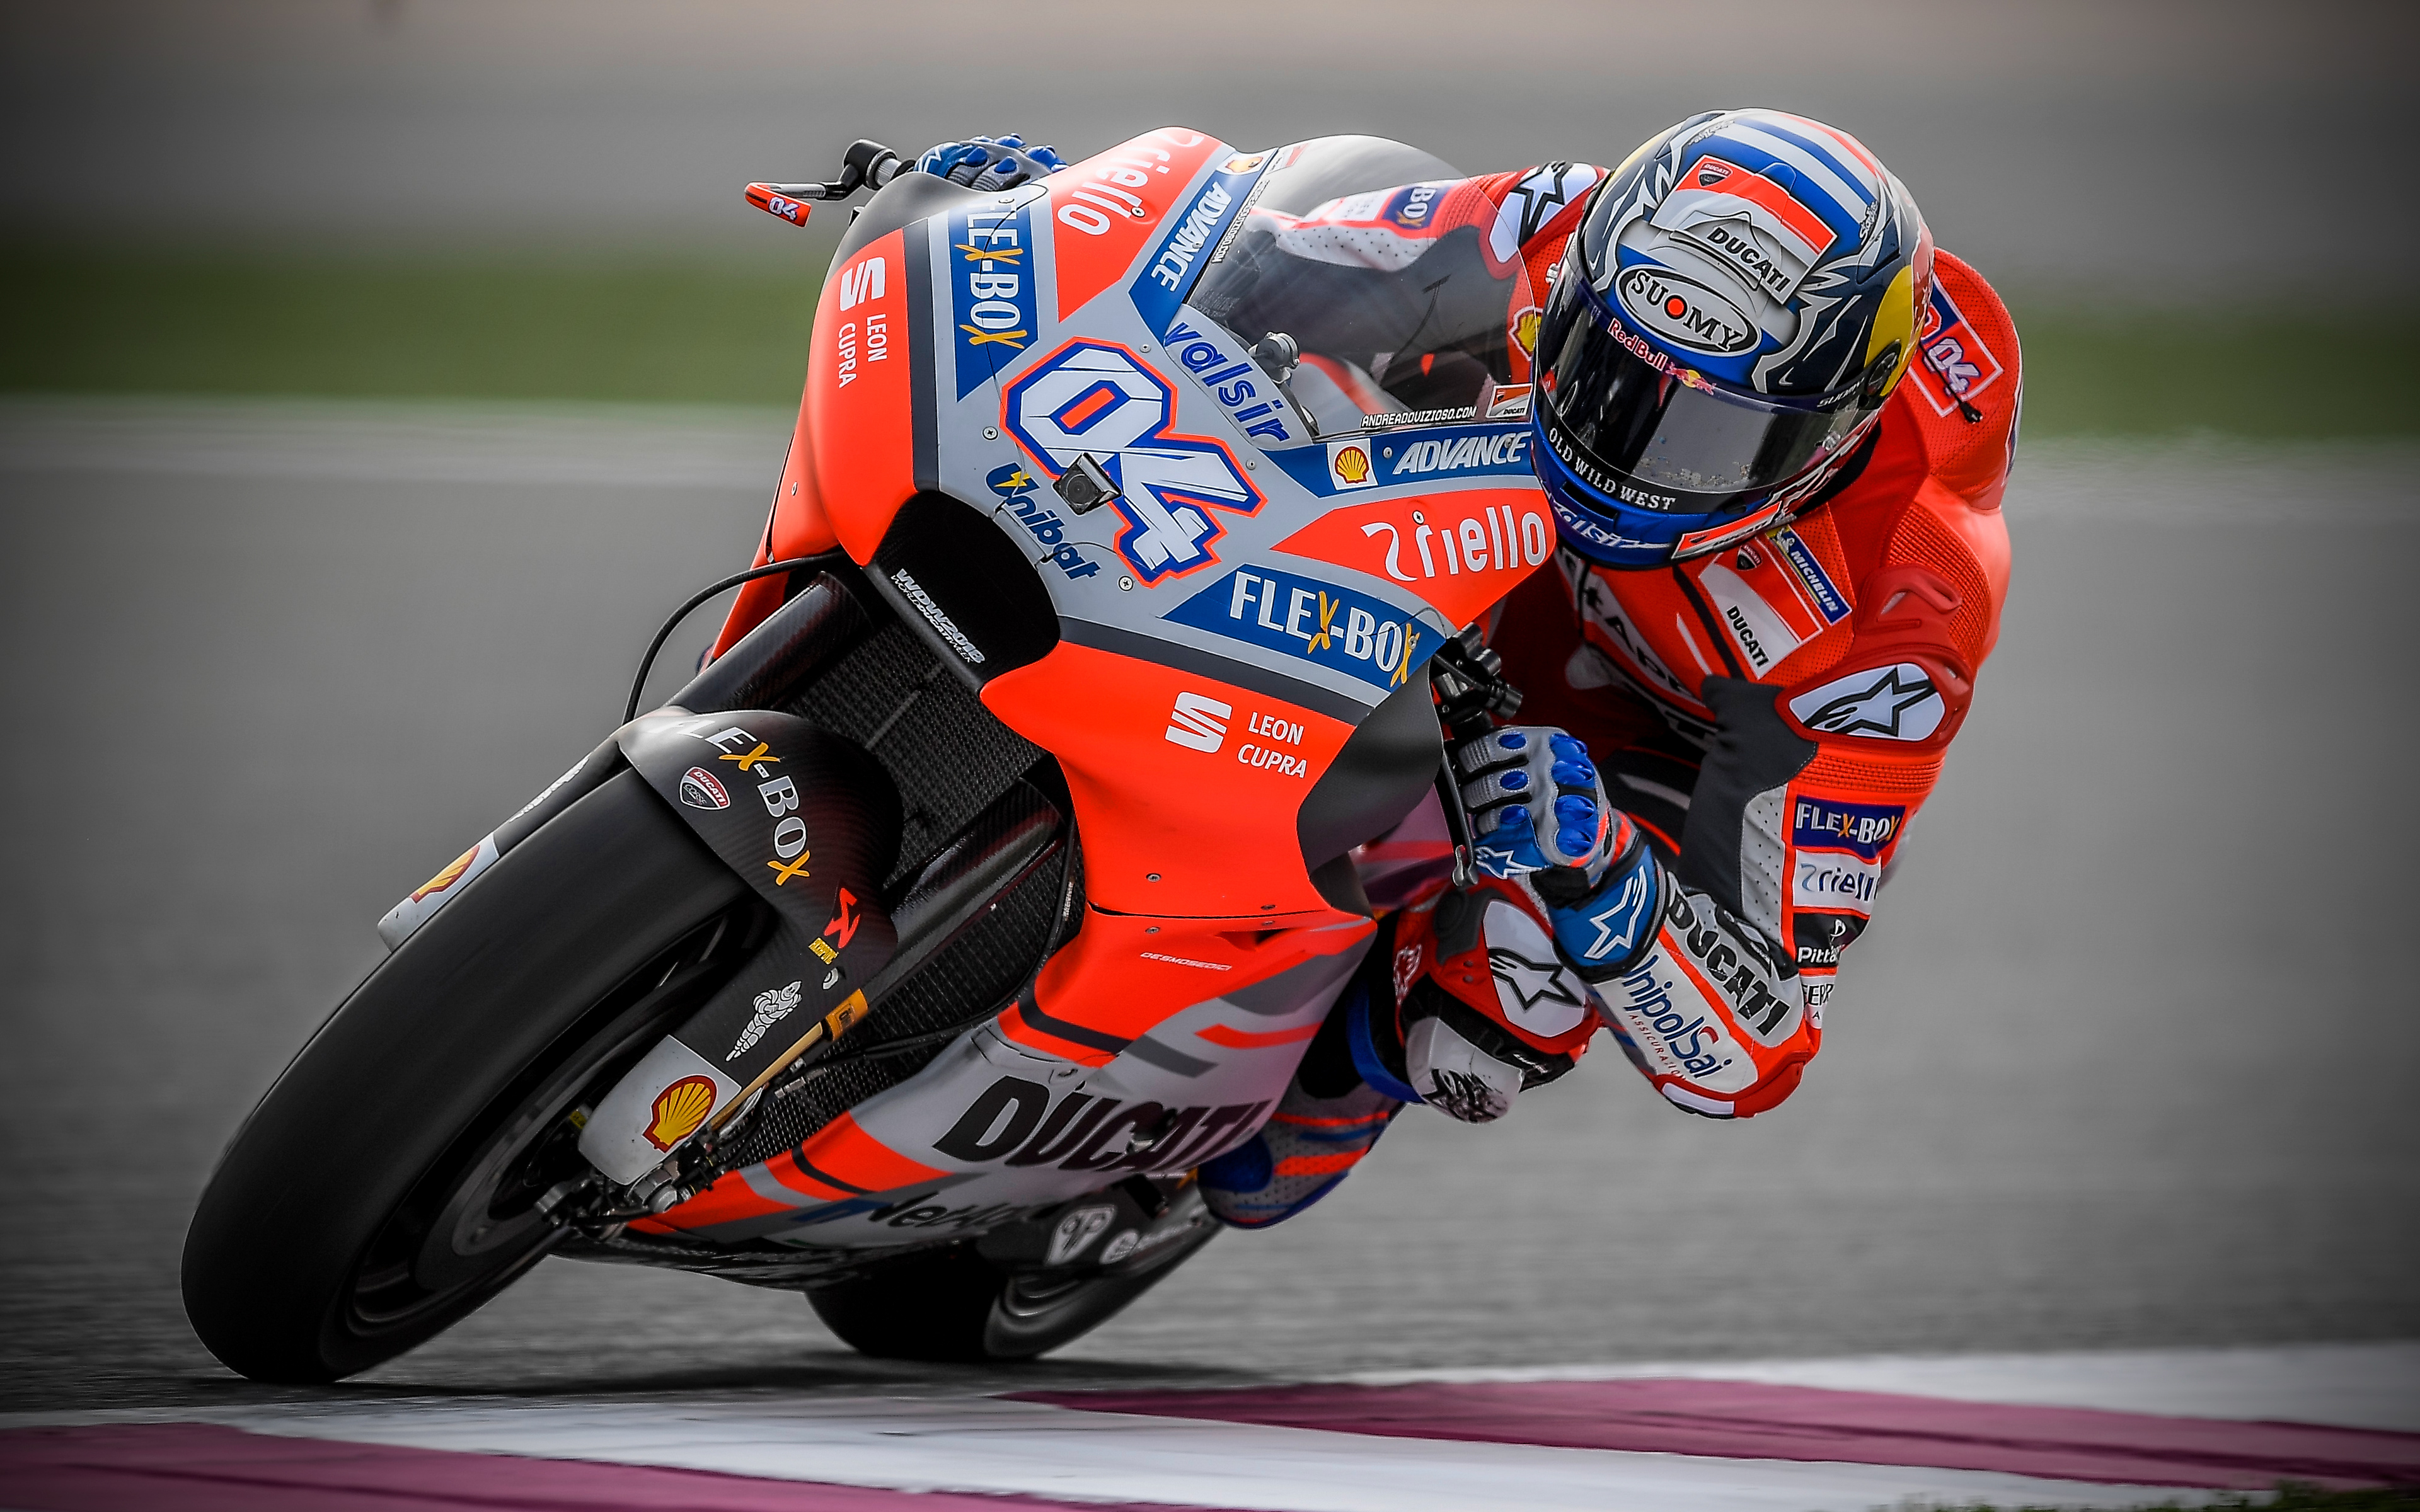 Download wallpapers Andrea Dovizioso Italian motorcycle racer 3840x2400